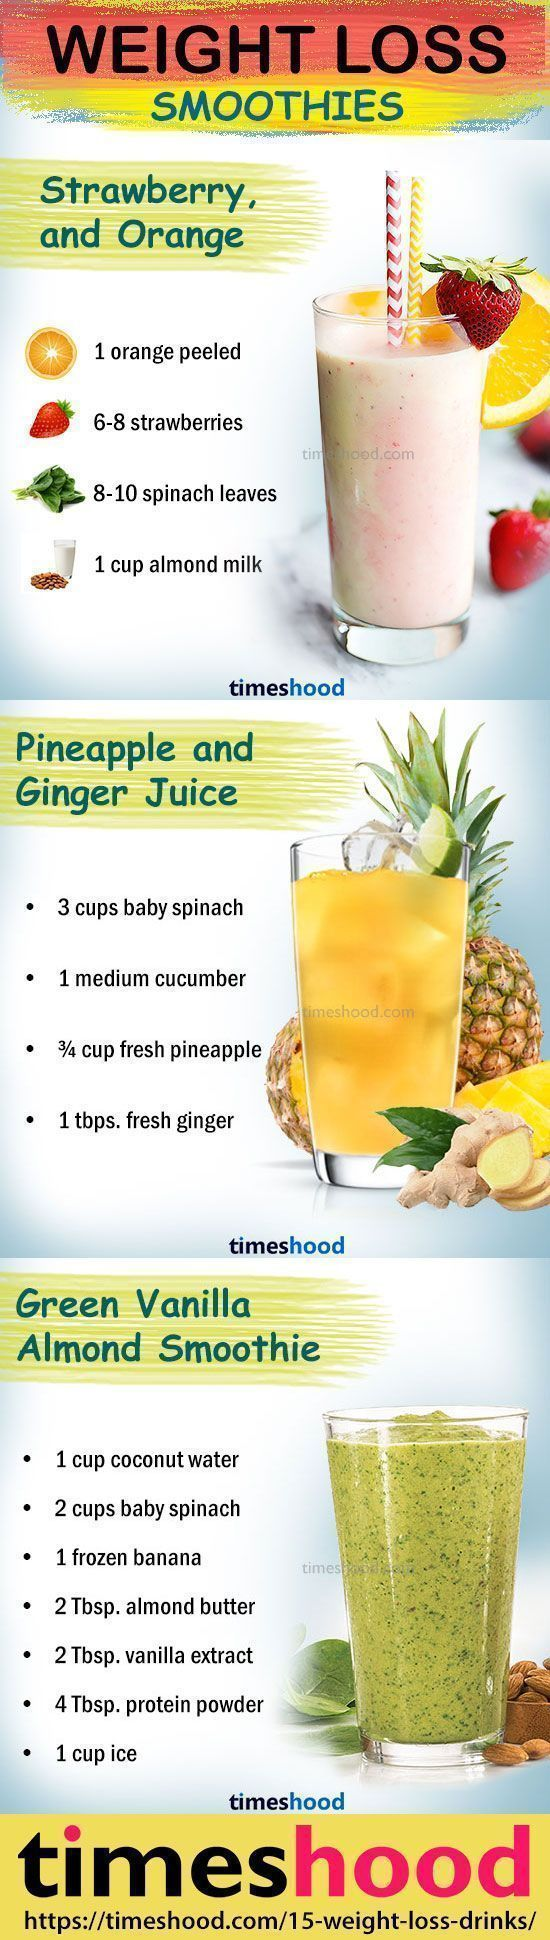 Healthy smoothie recipes for weight loss. Drink to lose weight. Weight loss smoothie recipes. Fat burning smoothies for fast weight loss. Check out 15 effective weight loss Drinks/Detox/Juice/Smoothies that works fast. https://timeshood.com/15-weight-loss-drinks/ #juicingforweightloss #weightlossjuicing #weightlosssmoothies